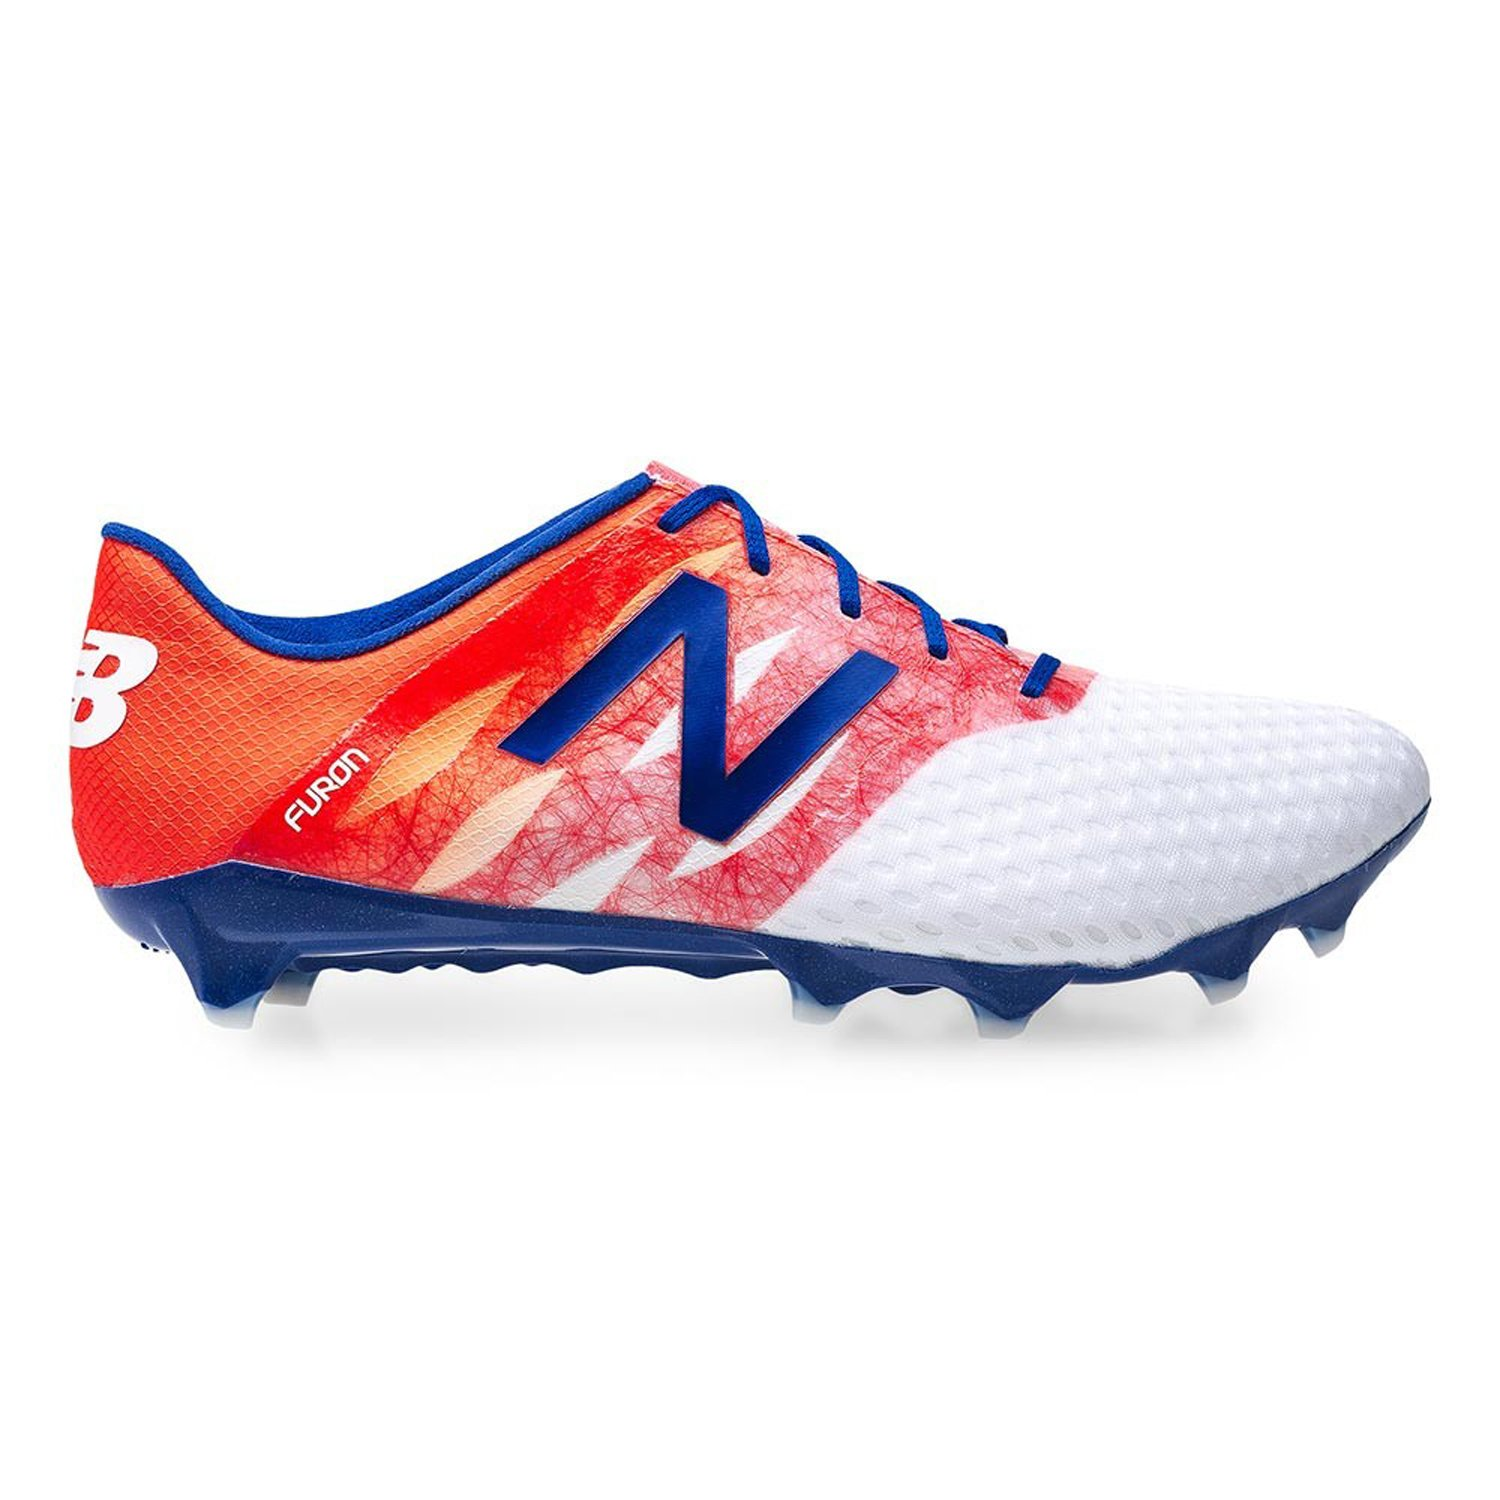 a3009c9e9c2 Amazon.com  New Balance Furon Pro FG Soccer Cleats Orange White Blue Mens  Size 10.5  Shoes